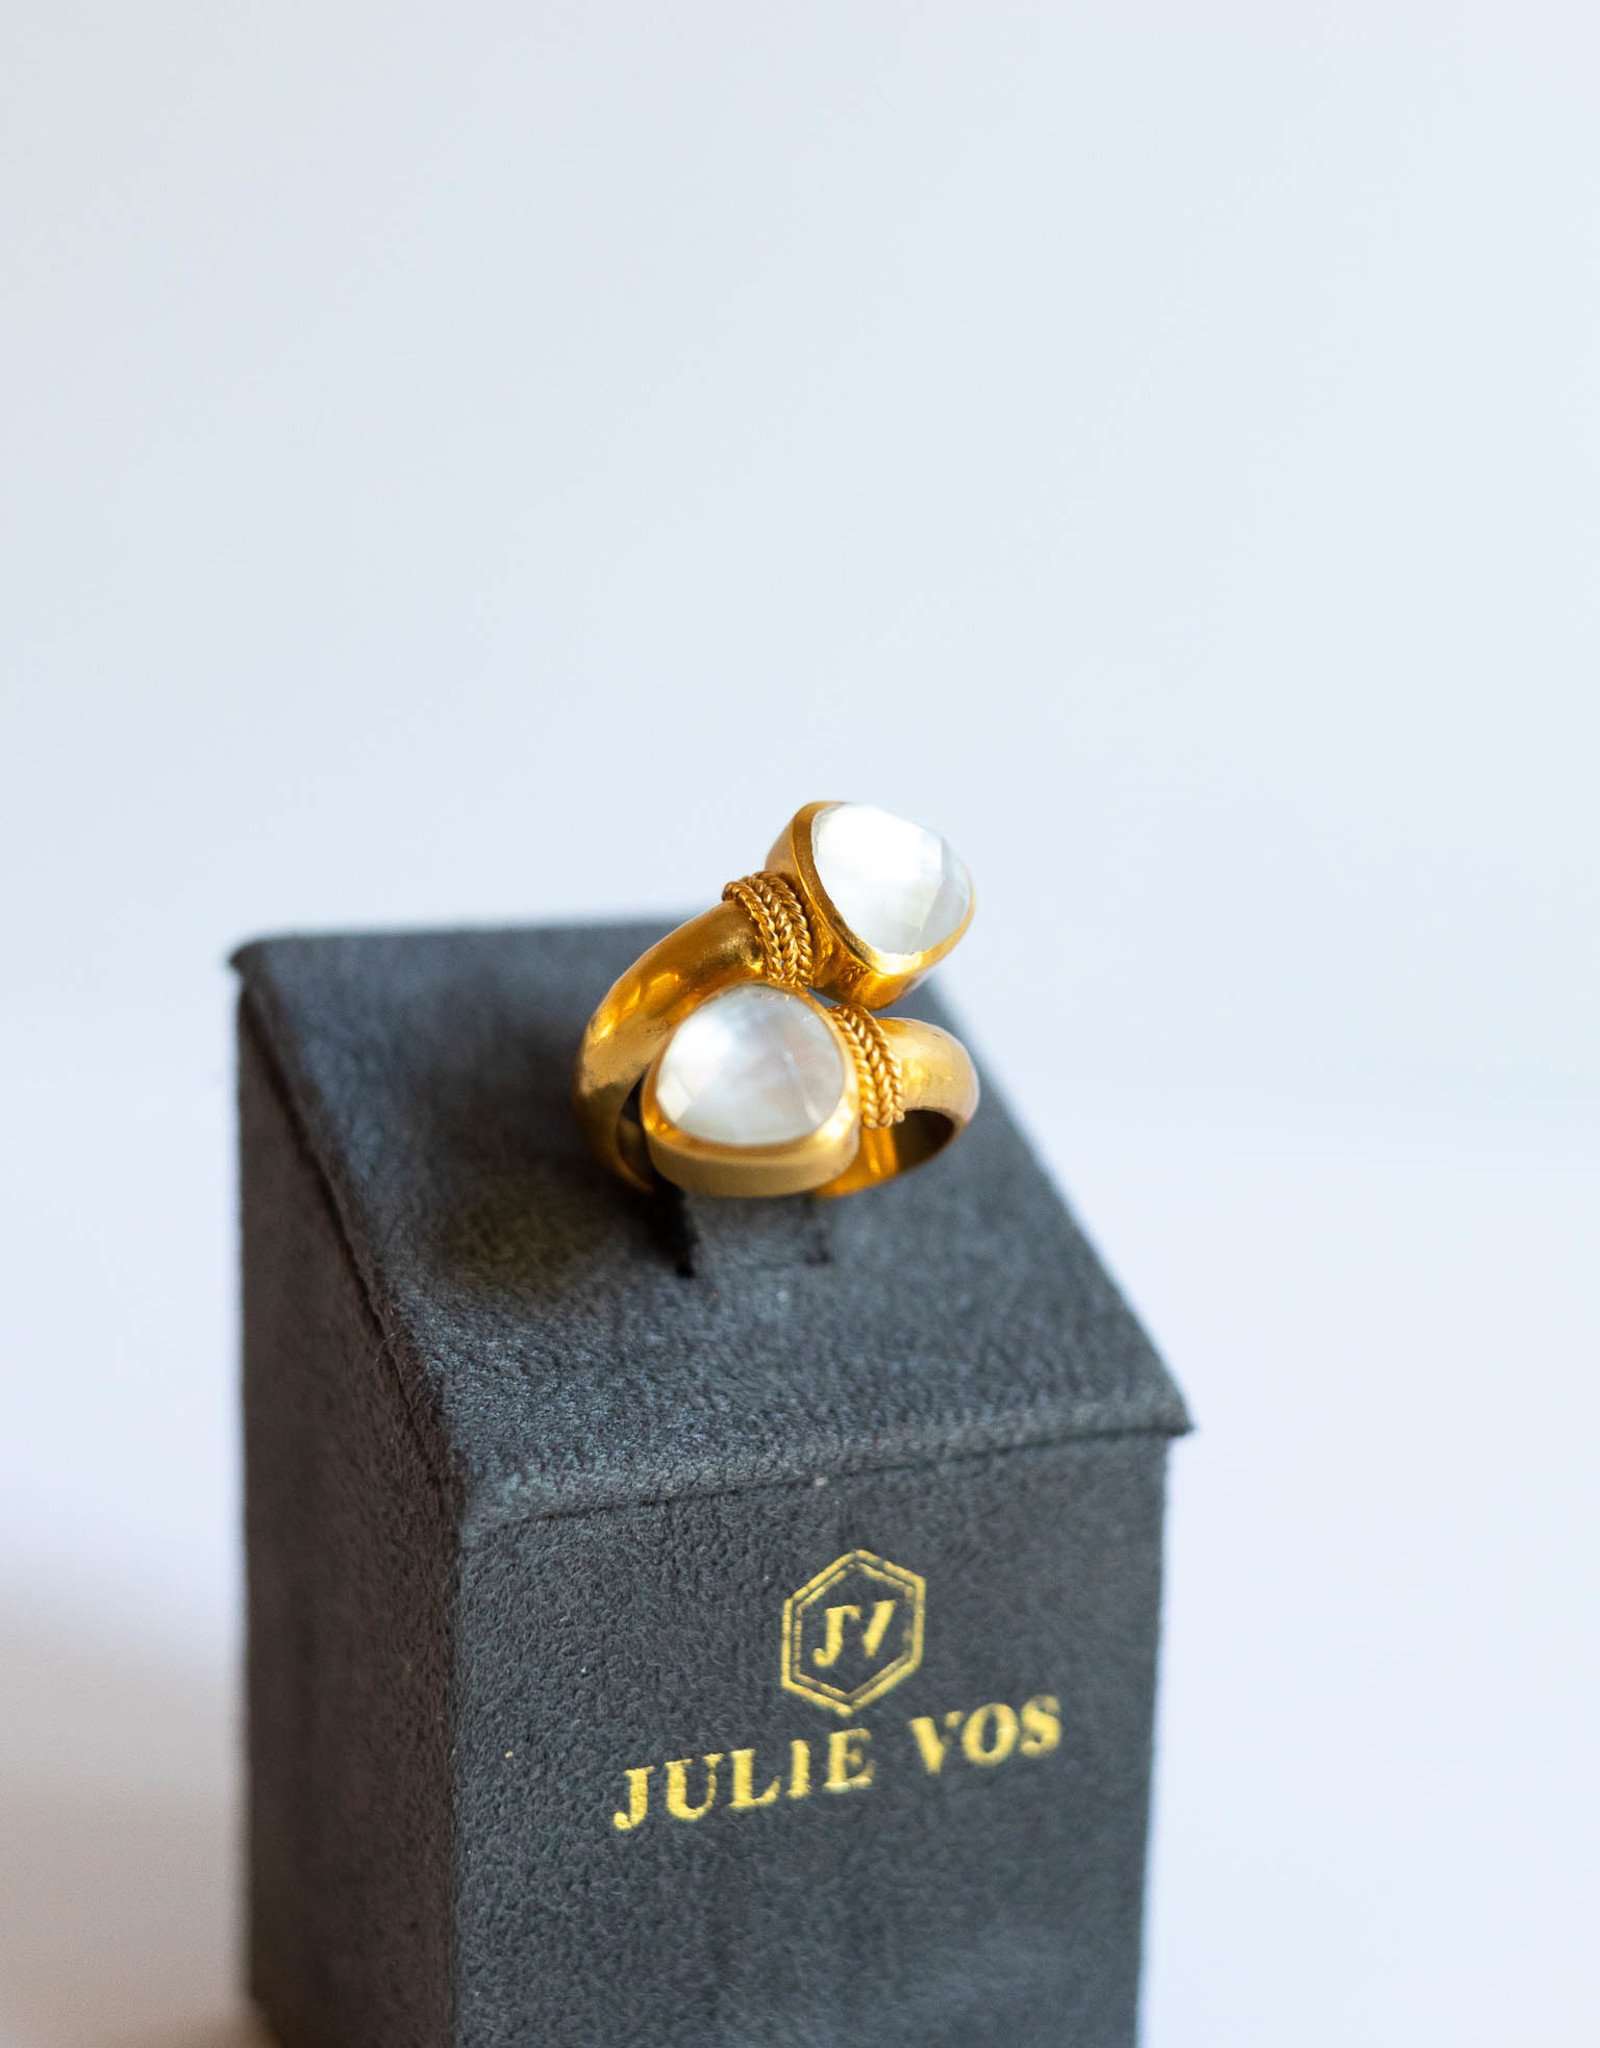 Julie Vos Paris Duet Ring